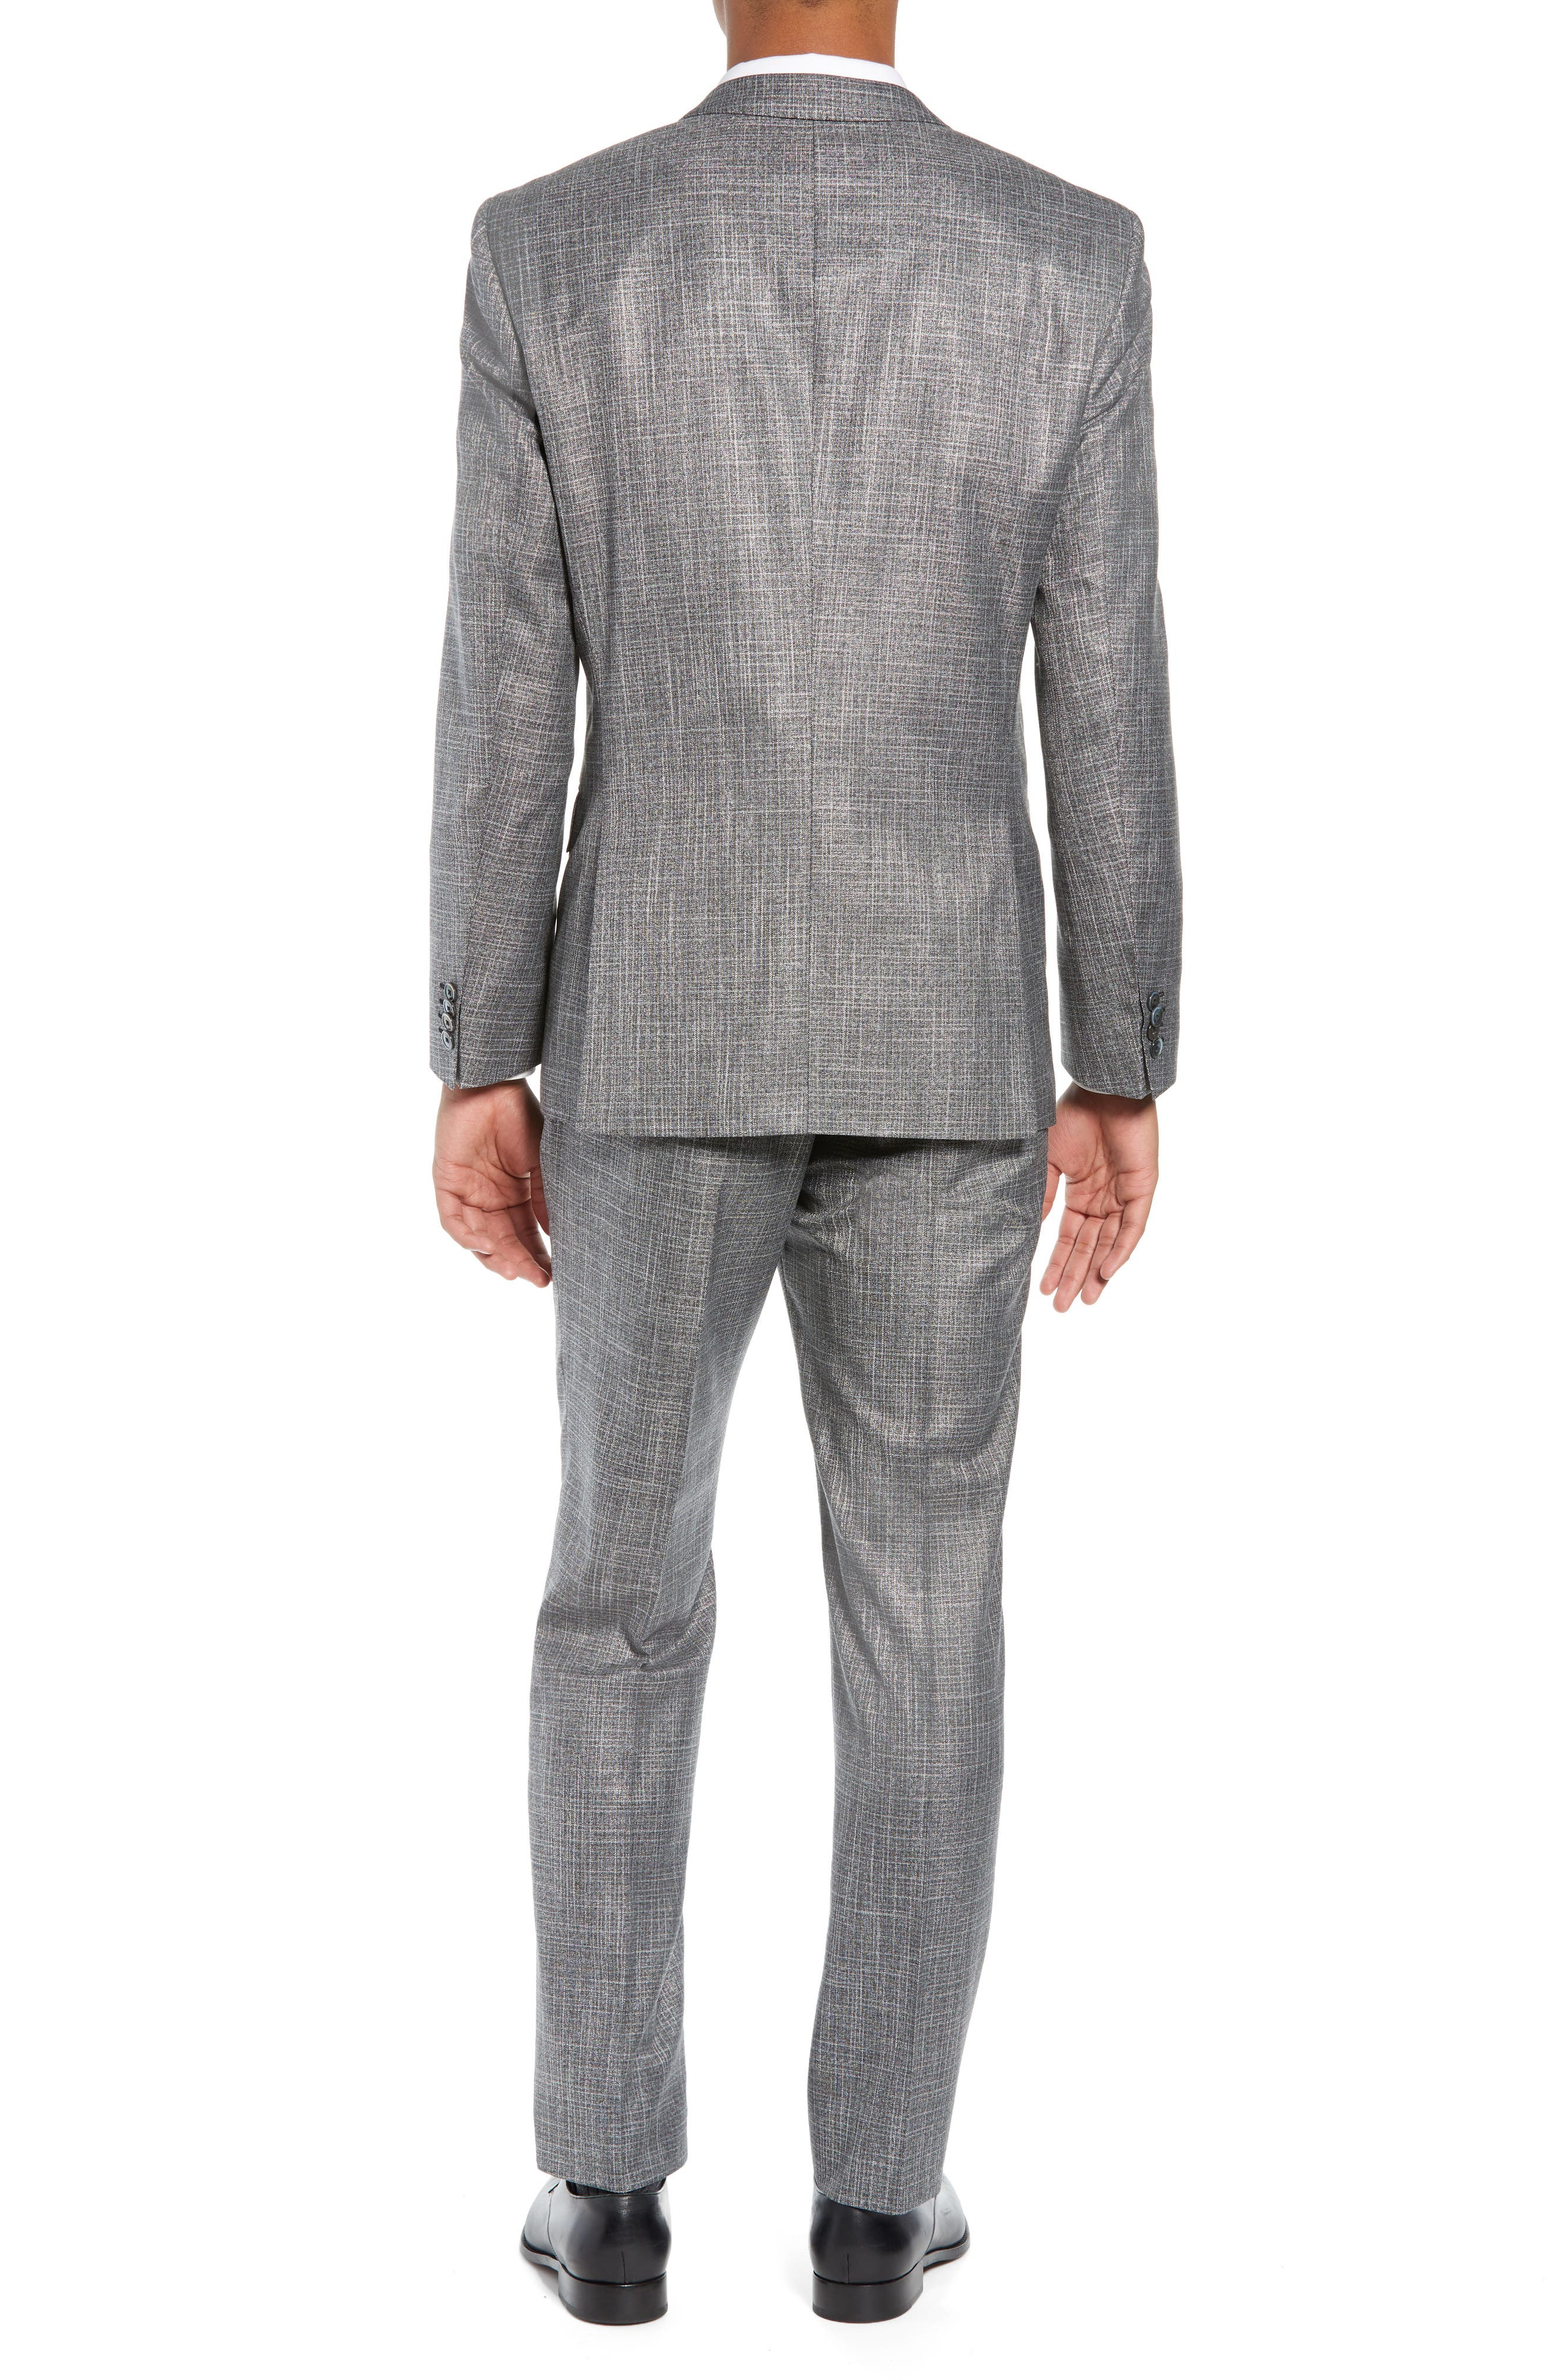 BOSS, Hutson/Gander Slim Fit Solid Wool Blend Suit, Alternate thumbnail 2, color, MEDIUM GREY